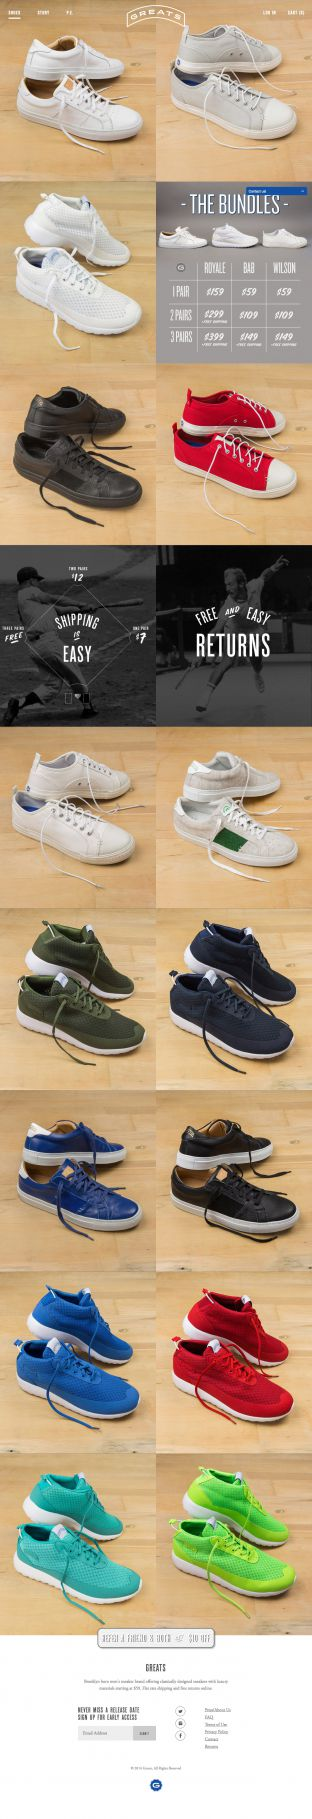 Designer Quality Mens Sneakers and Footwear - Greats